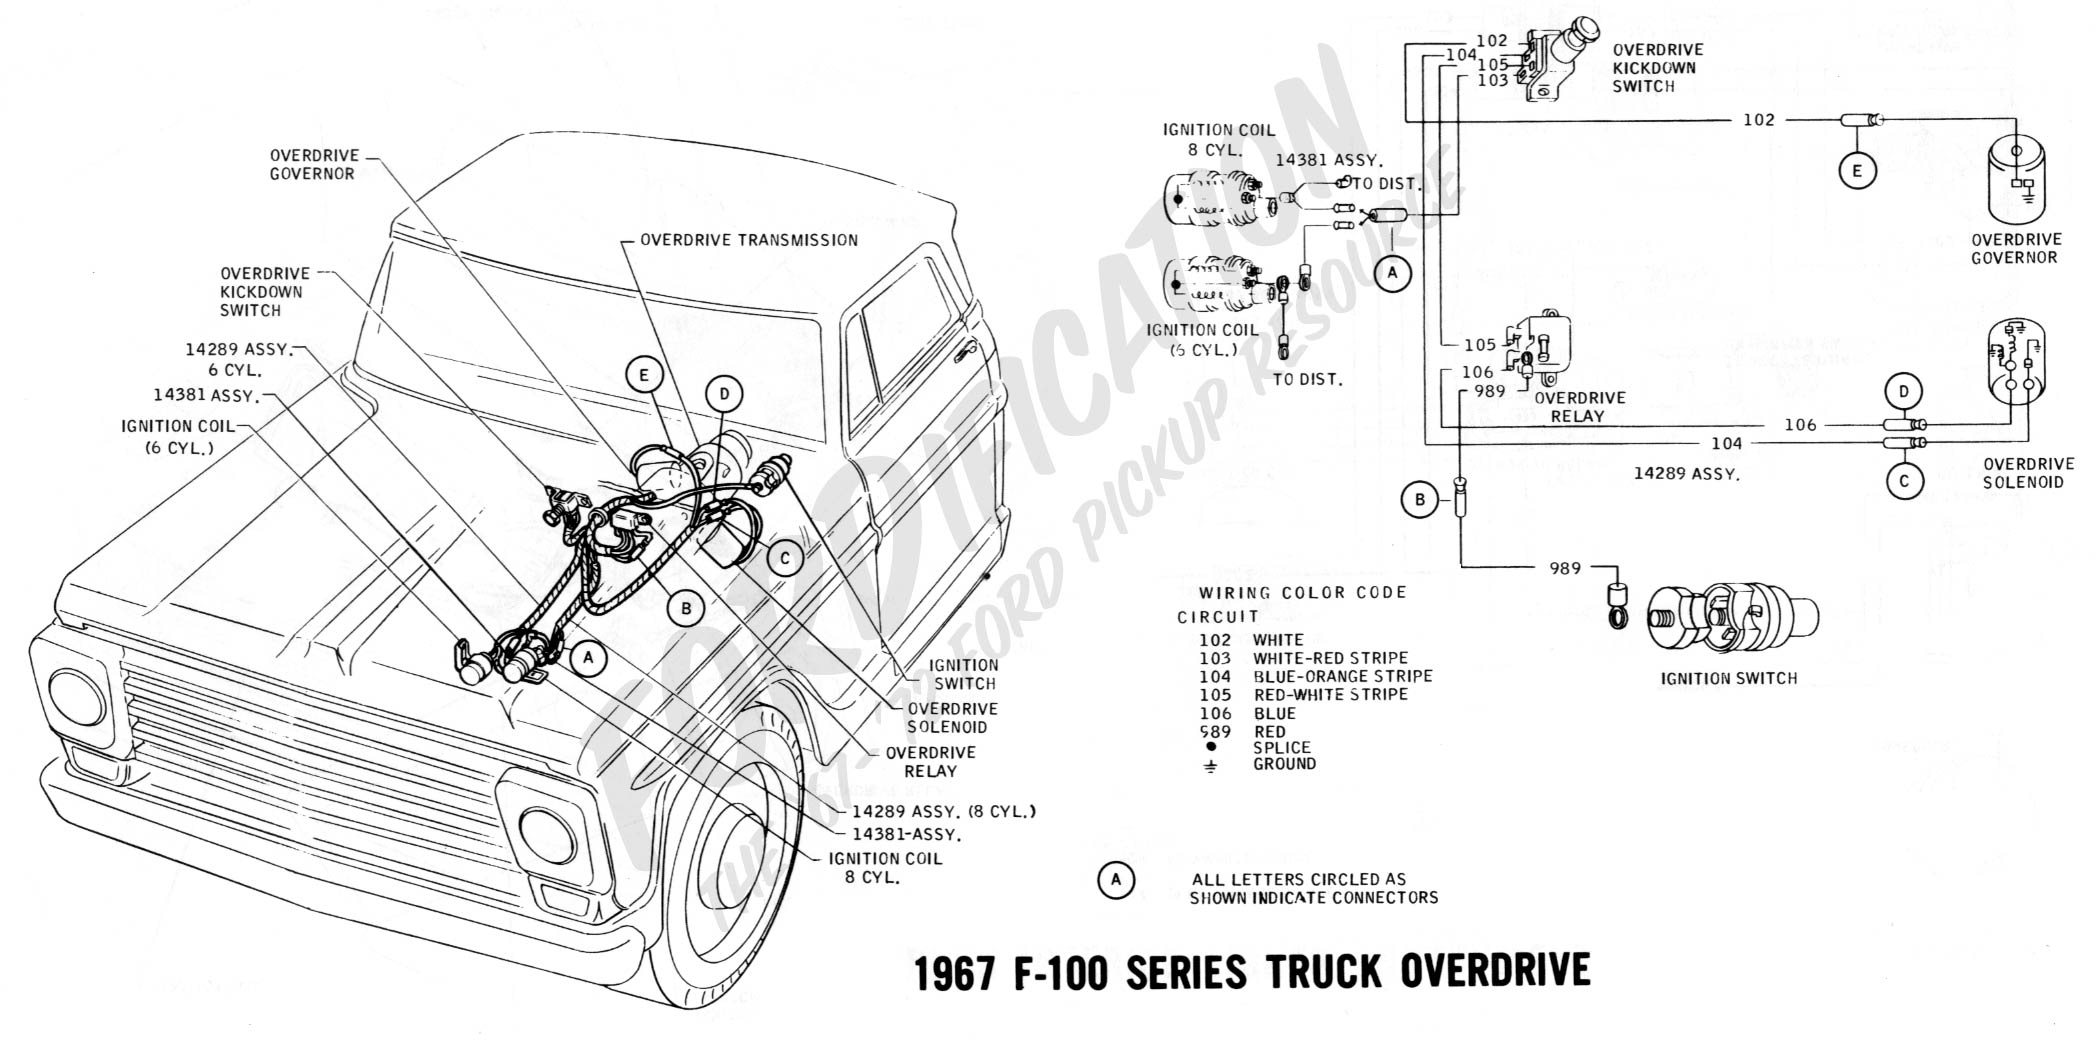 78 Chevy Fuse Box Diagram Wiring Library Malibu Ford Truck Technical Drawings And Schematics Section H 1968 F100 Hood 1967 F 100 Series